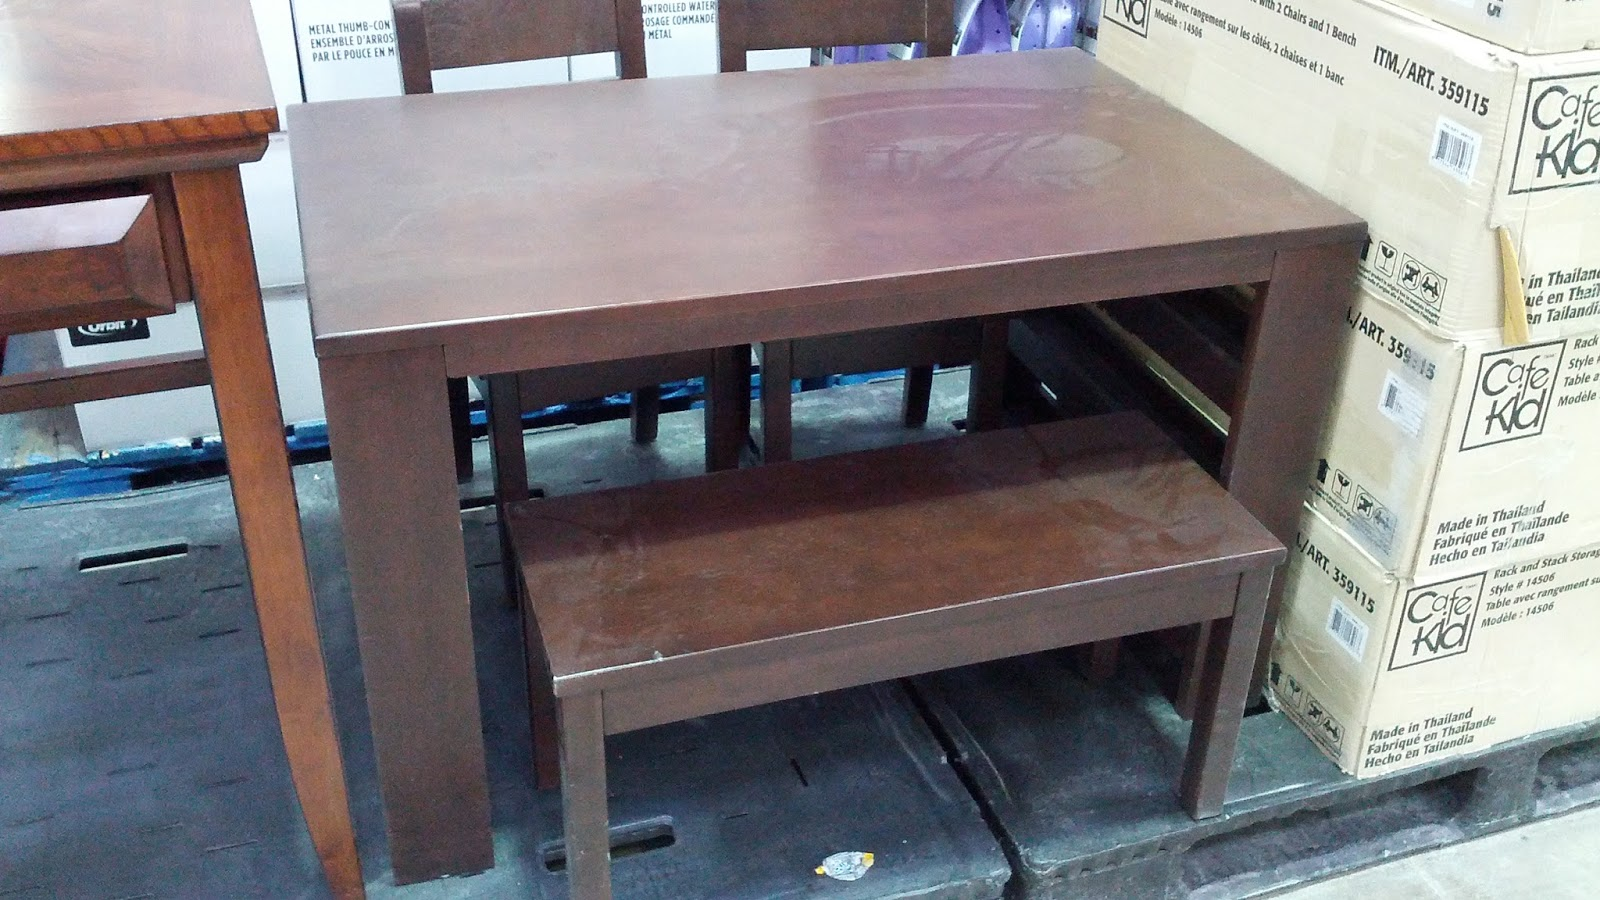 Cafekid Rack and Stack Table with 2 Chairs and Bench